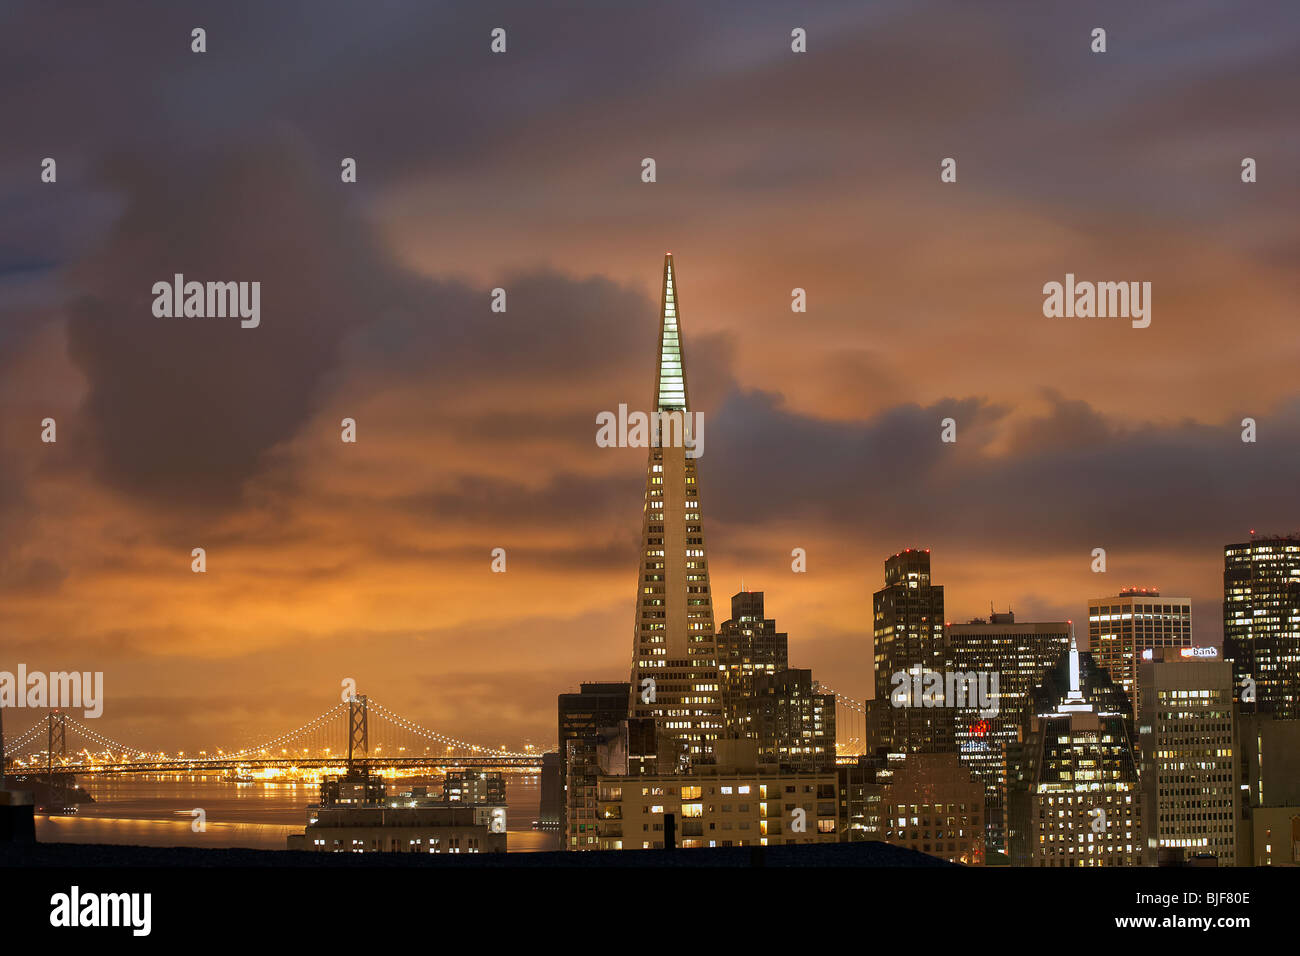 City scape of San Francisco at night with heavy clouds. - Stock Image